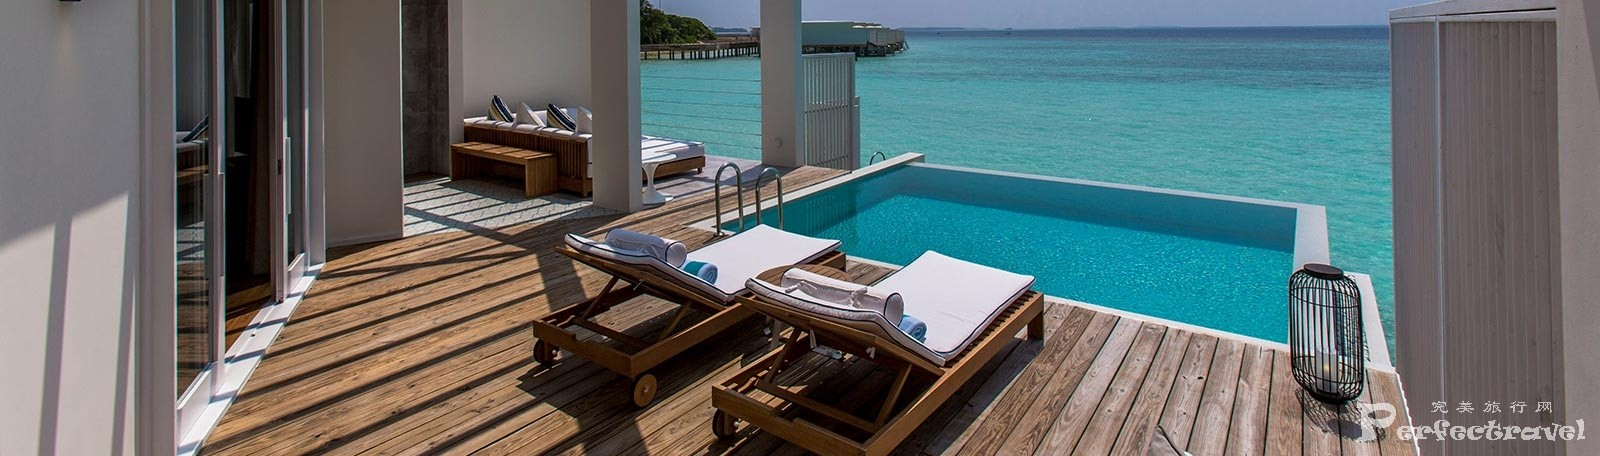 amilla-fushi-ocean-lagoon-house-photo-2509_slide3.jpg